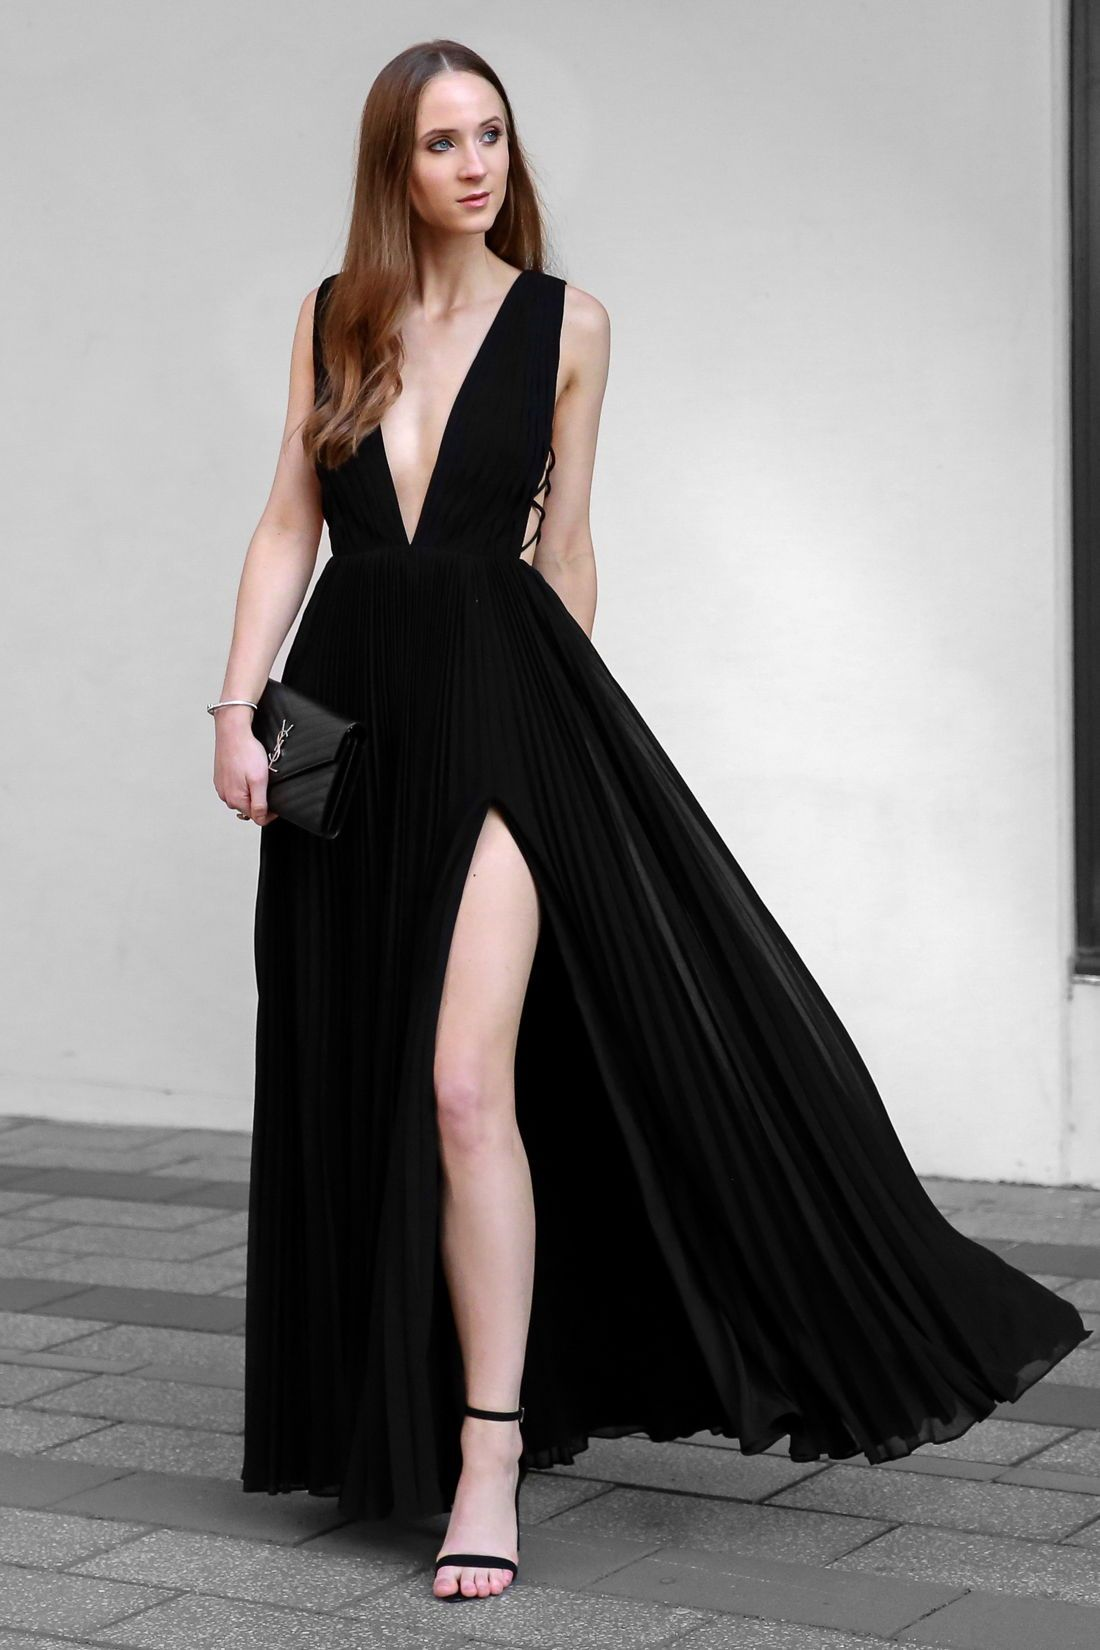 Stunning Evening Dresses To Steal The Spotlight From Luxe With Love Evening Dresses Fashion Award Show Dresses [ 1650 x 1100 Pixel ]